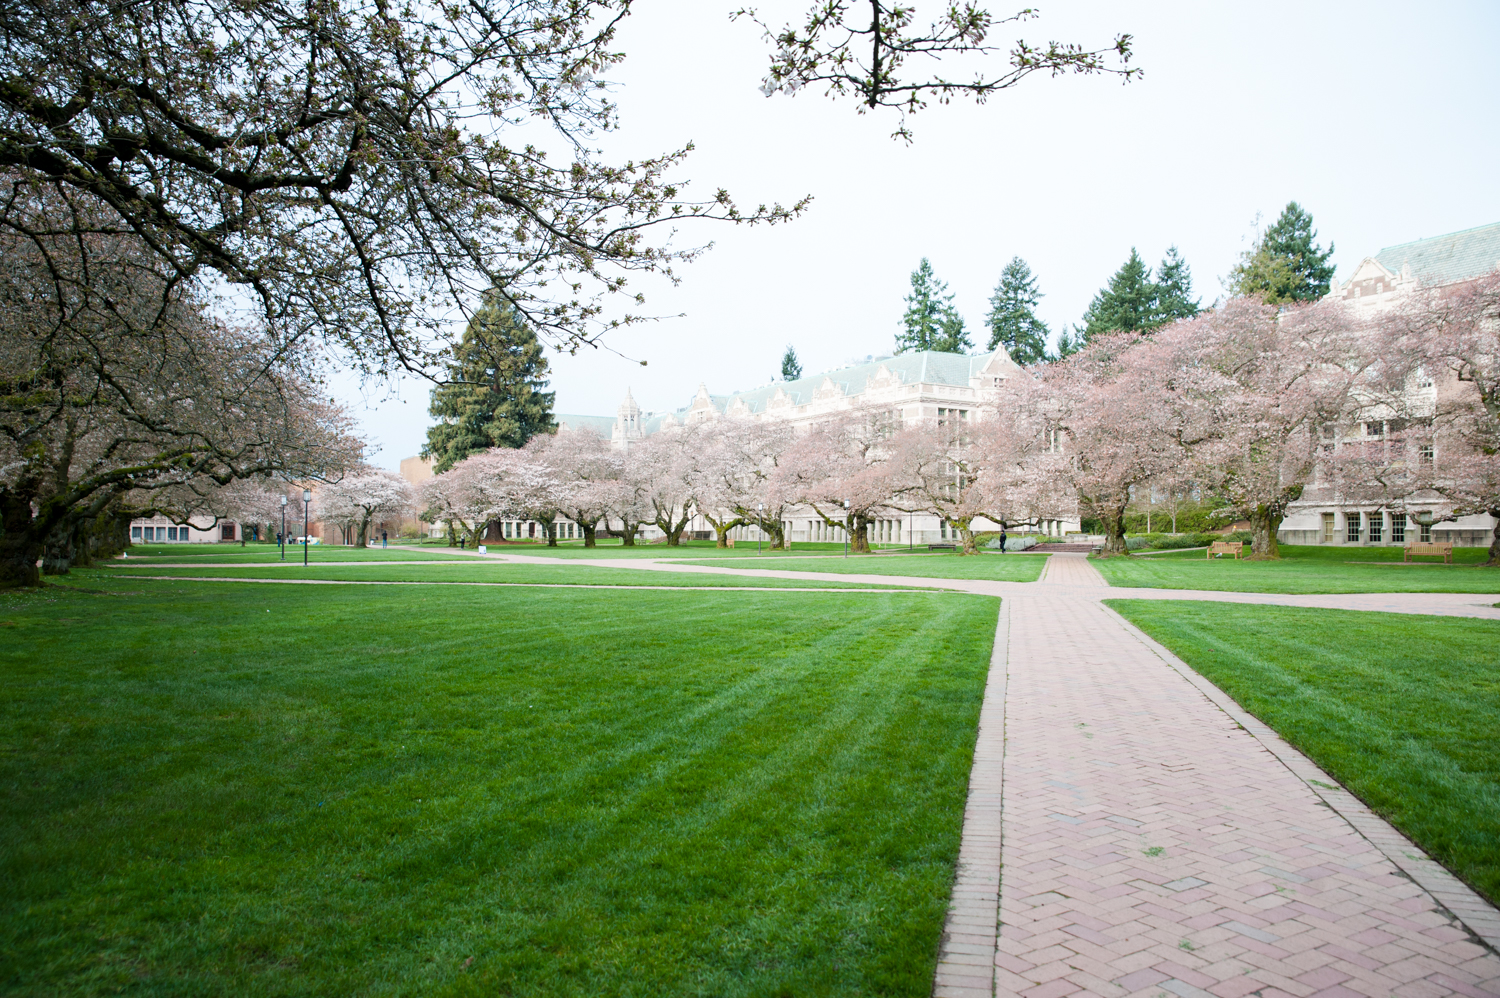 "Every year,{&nbsp;}<a  href=""http://seattlerefined.com/lifestyle/photos-cherry-blossoms-hit-peak-bloom-draw-peak-crowds-this-weekend"" target=""_blank"" title=""http://seattlerefined.com/lifestyle/photos-cherry-blossoms-hit-peak-bloom-draw-peak-crowds-this-weekend"">crowds swarm</a>{&nbsp;}the University of Washington quad for the peak bloom of their iconic cherry blossoms; picnicking, taking photos, and enjoying the beauty. Amidst COVID-19, the scene at this year's peak bloom is much, much different. (Image: Elizabeth Crook / Seattle Refined)"